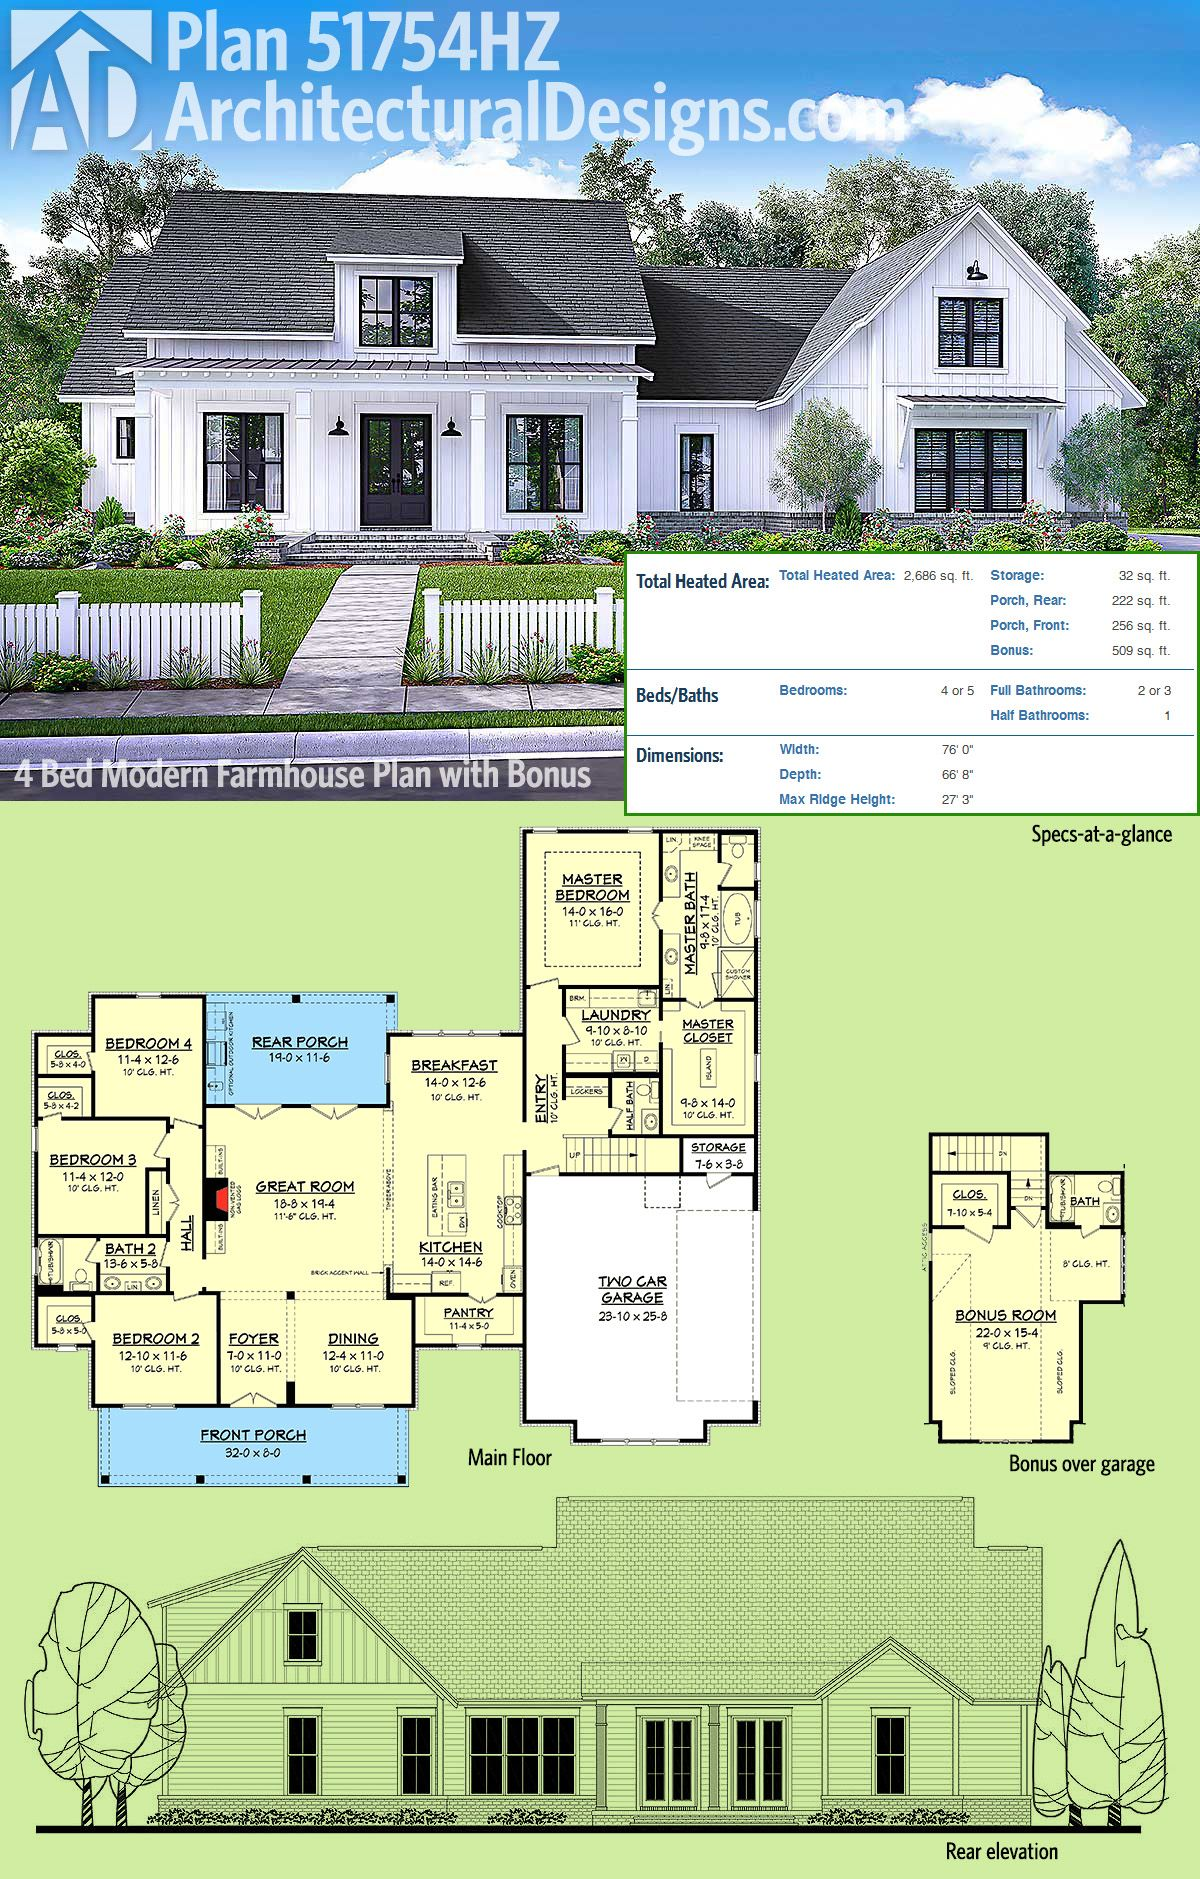 Plan 51754hz modern farmhouse plan with bonus room for 5 bedroom modern farmhouse plans